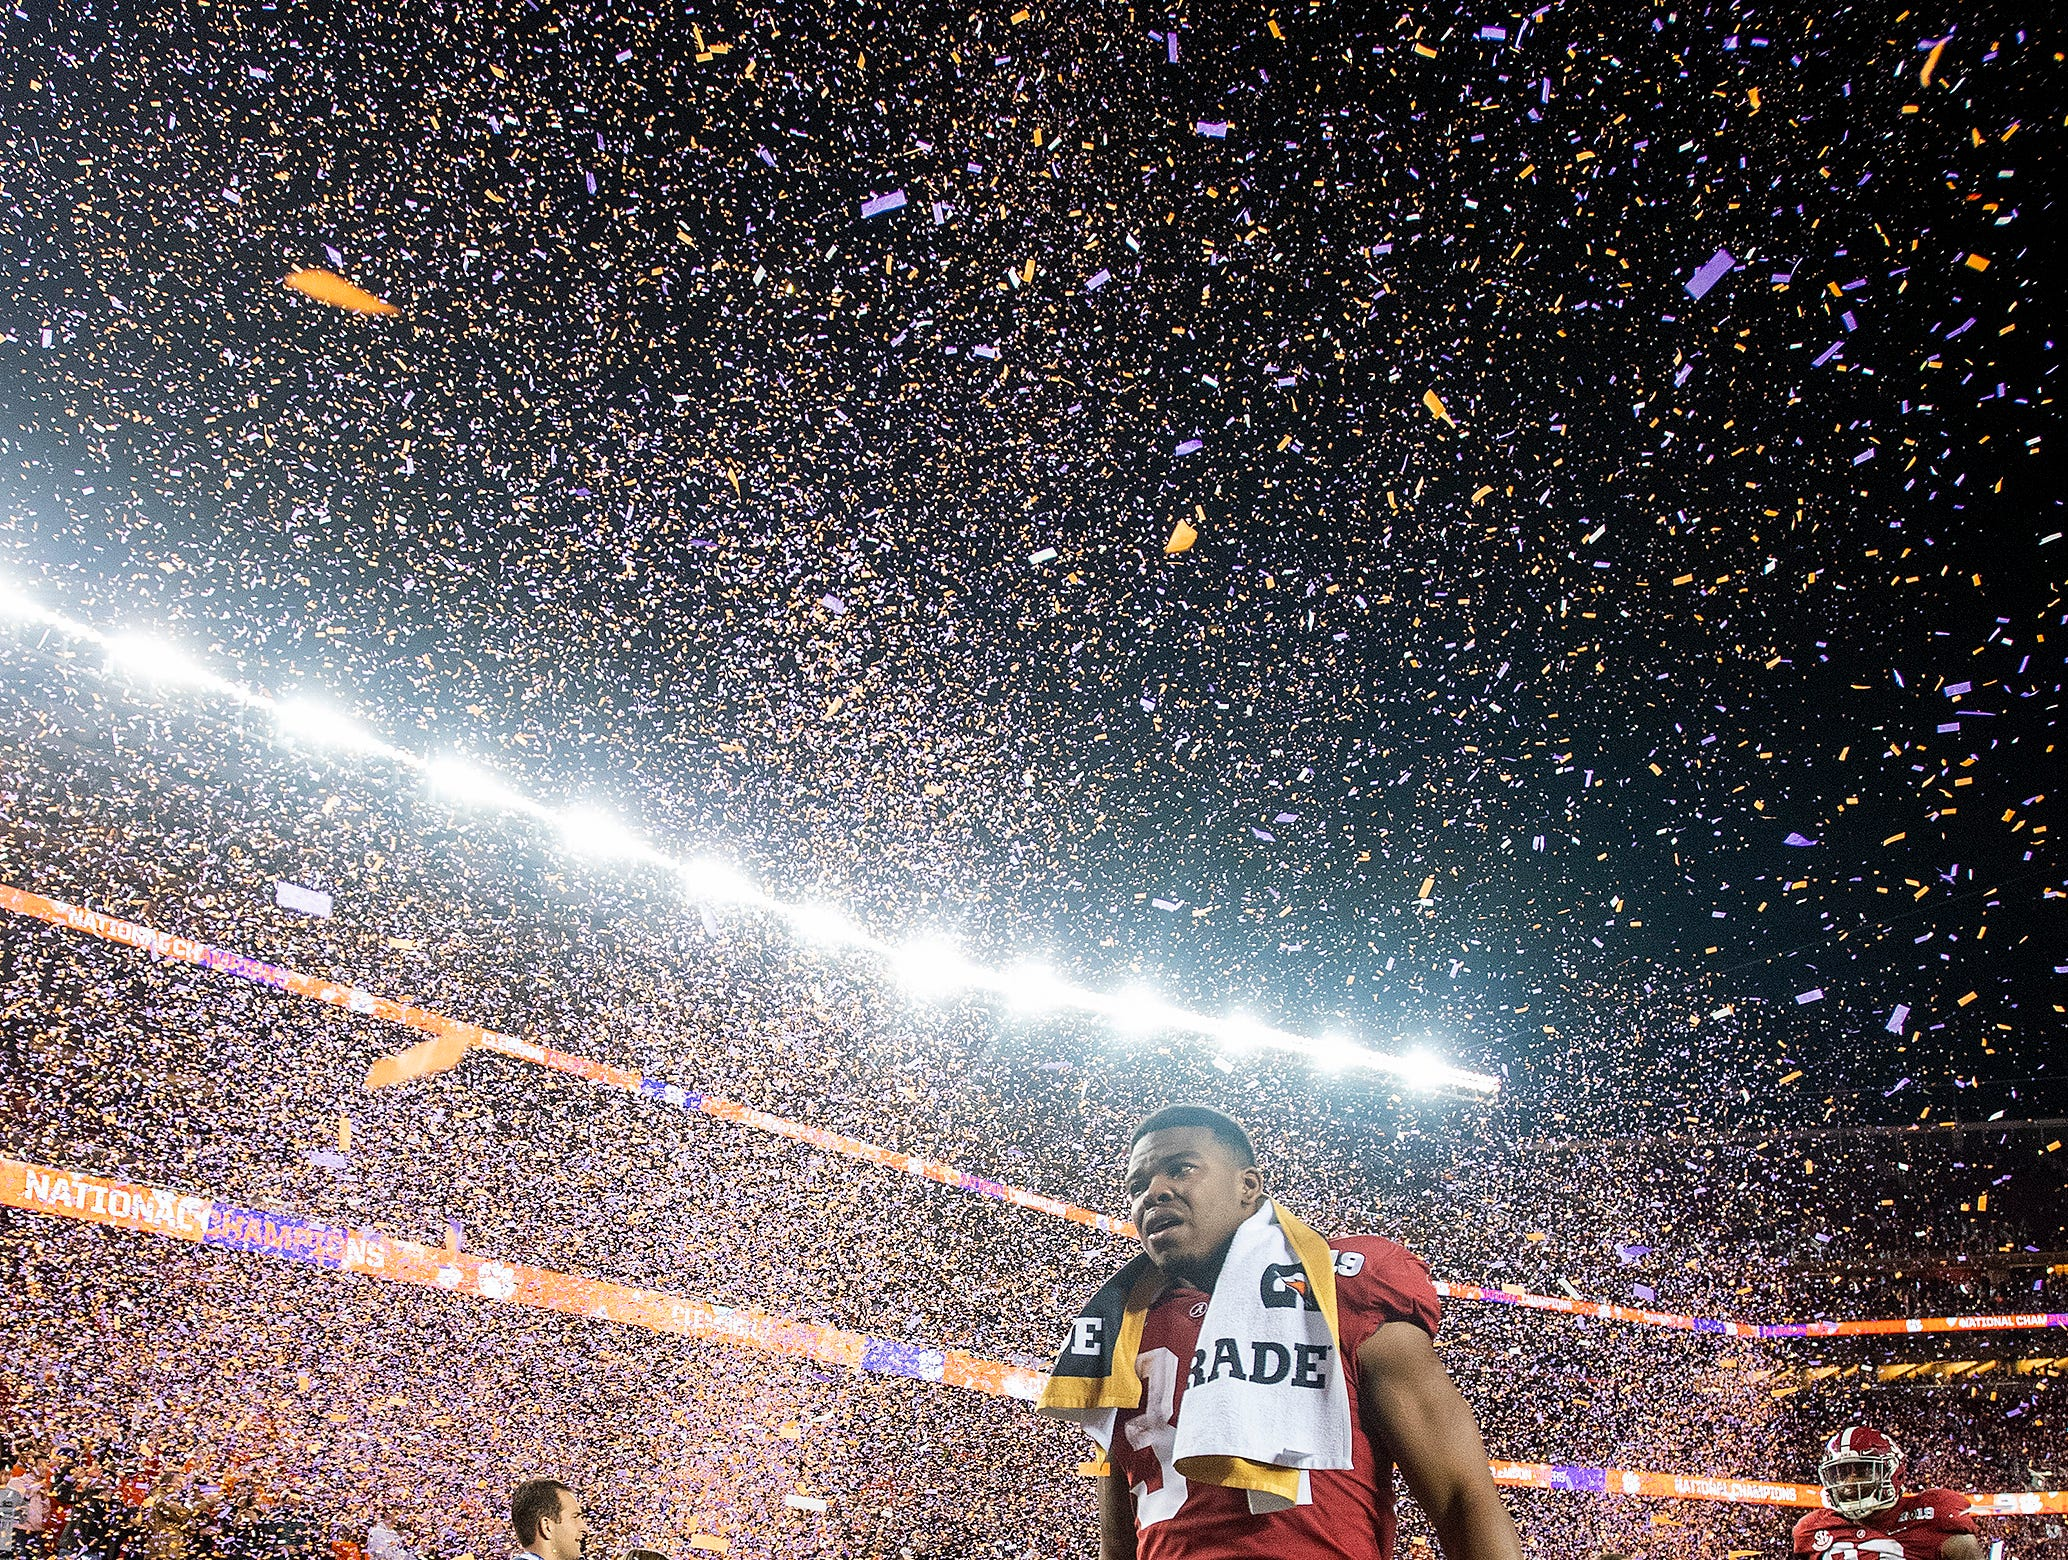 Alabama running back Damien Harris (34) walks off the field after losing to Clemson in the College Football Playoff National Championship game at Levi's Stadium in Santa Clara, Ca., on Monday January 7, 2019.